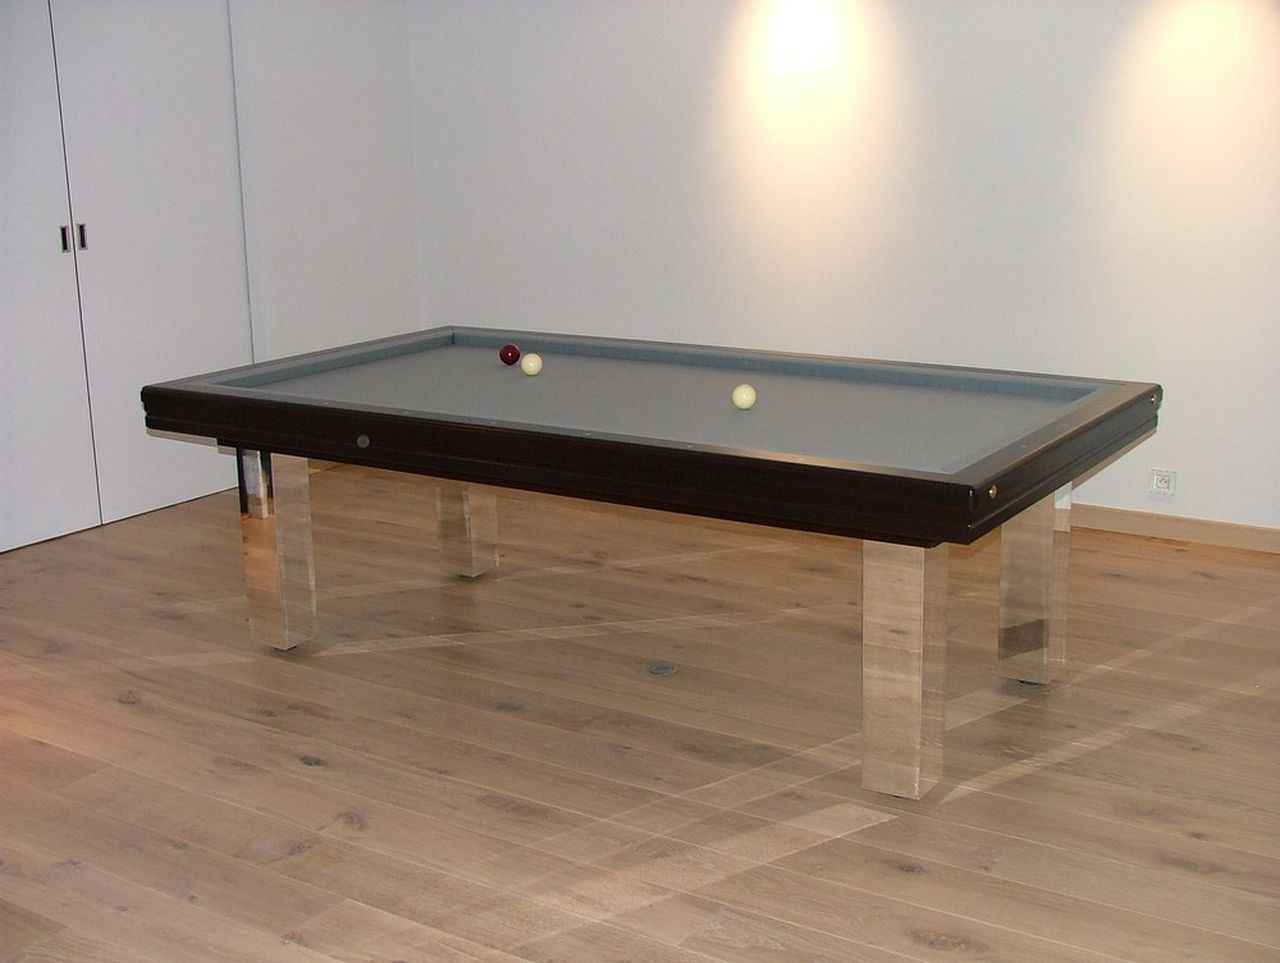 billard toulet dans billard toulet de billard et baby foot sur ambiance plaisir b. Black Bedroom Furniture Sets. Home Design Ideas